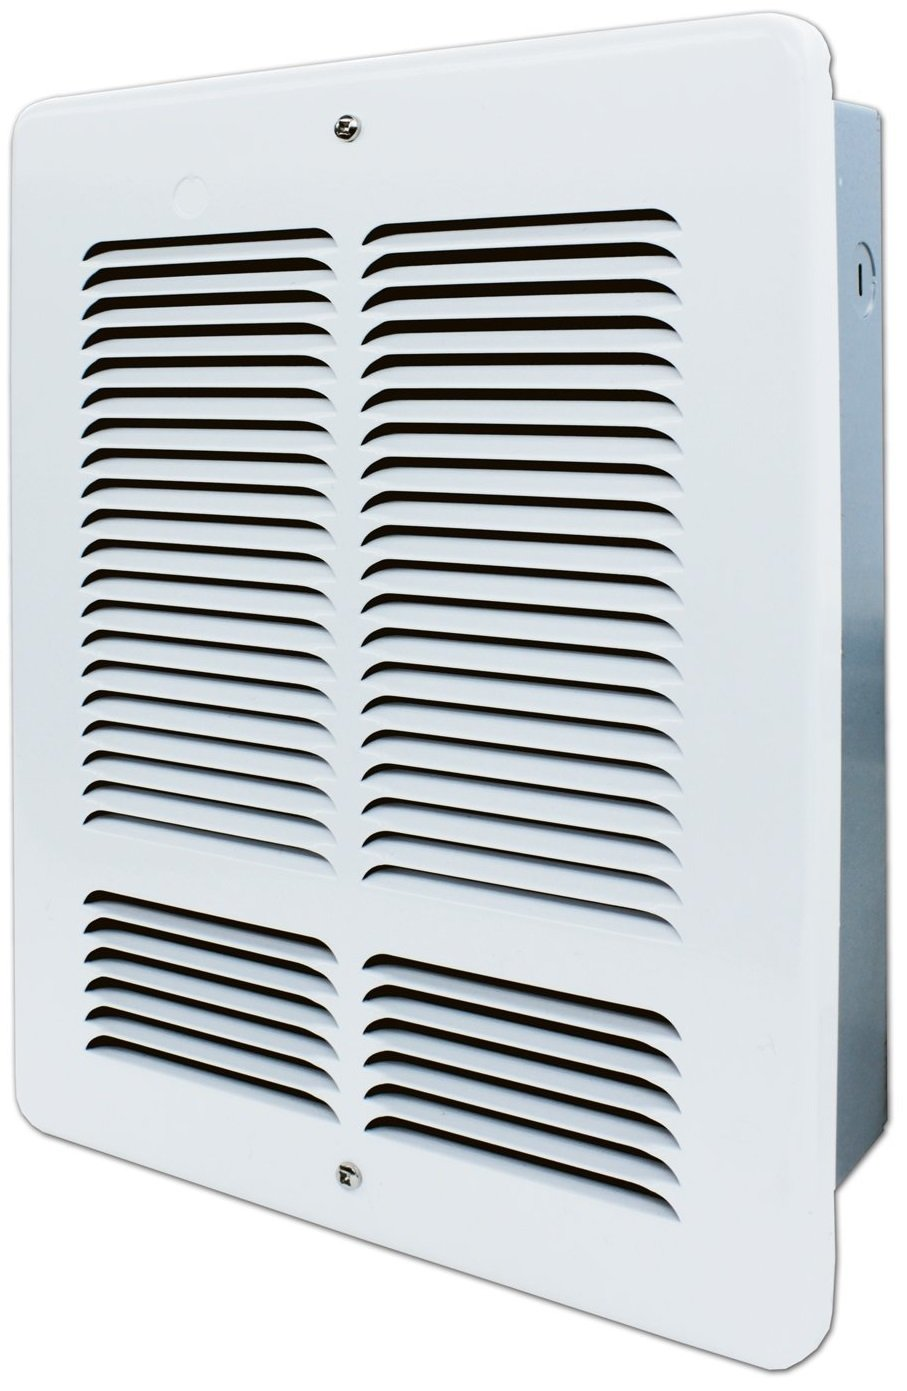 King Electric W1215 W Wall Heater 120 Volt White Floor Heating Furnace 110 Wiring Registers